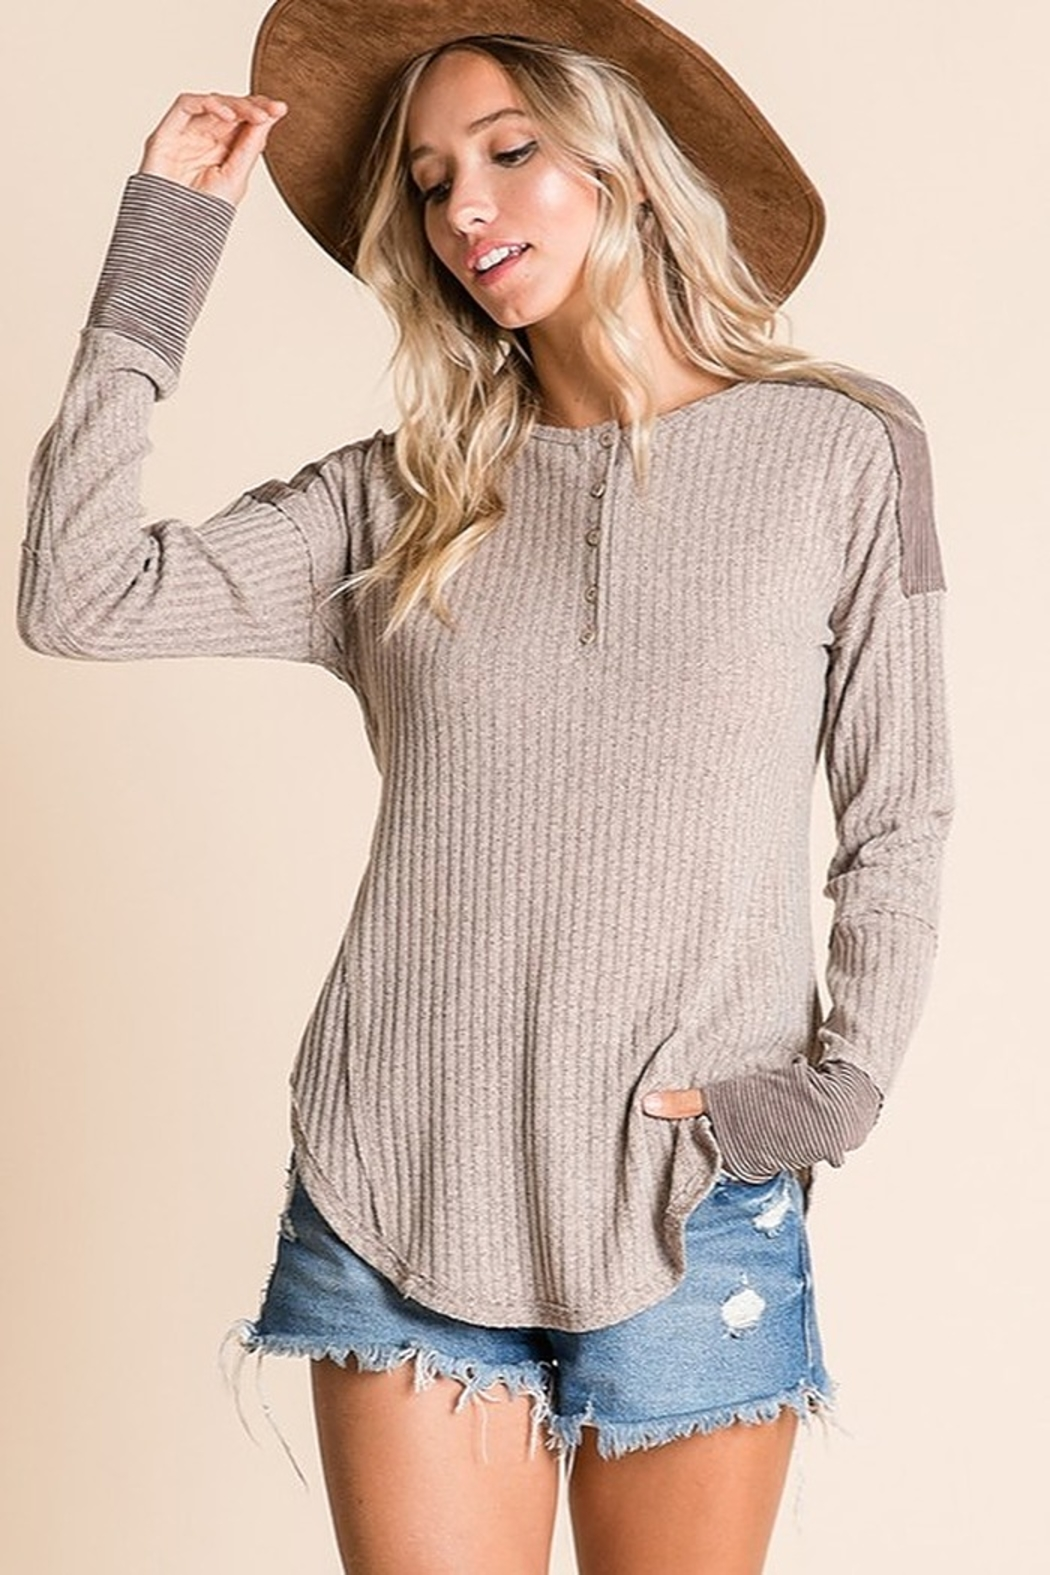 Ces Femme Ribbed Fabric Mix Match Top - Front Full Image